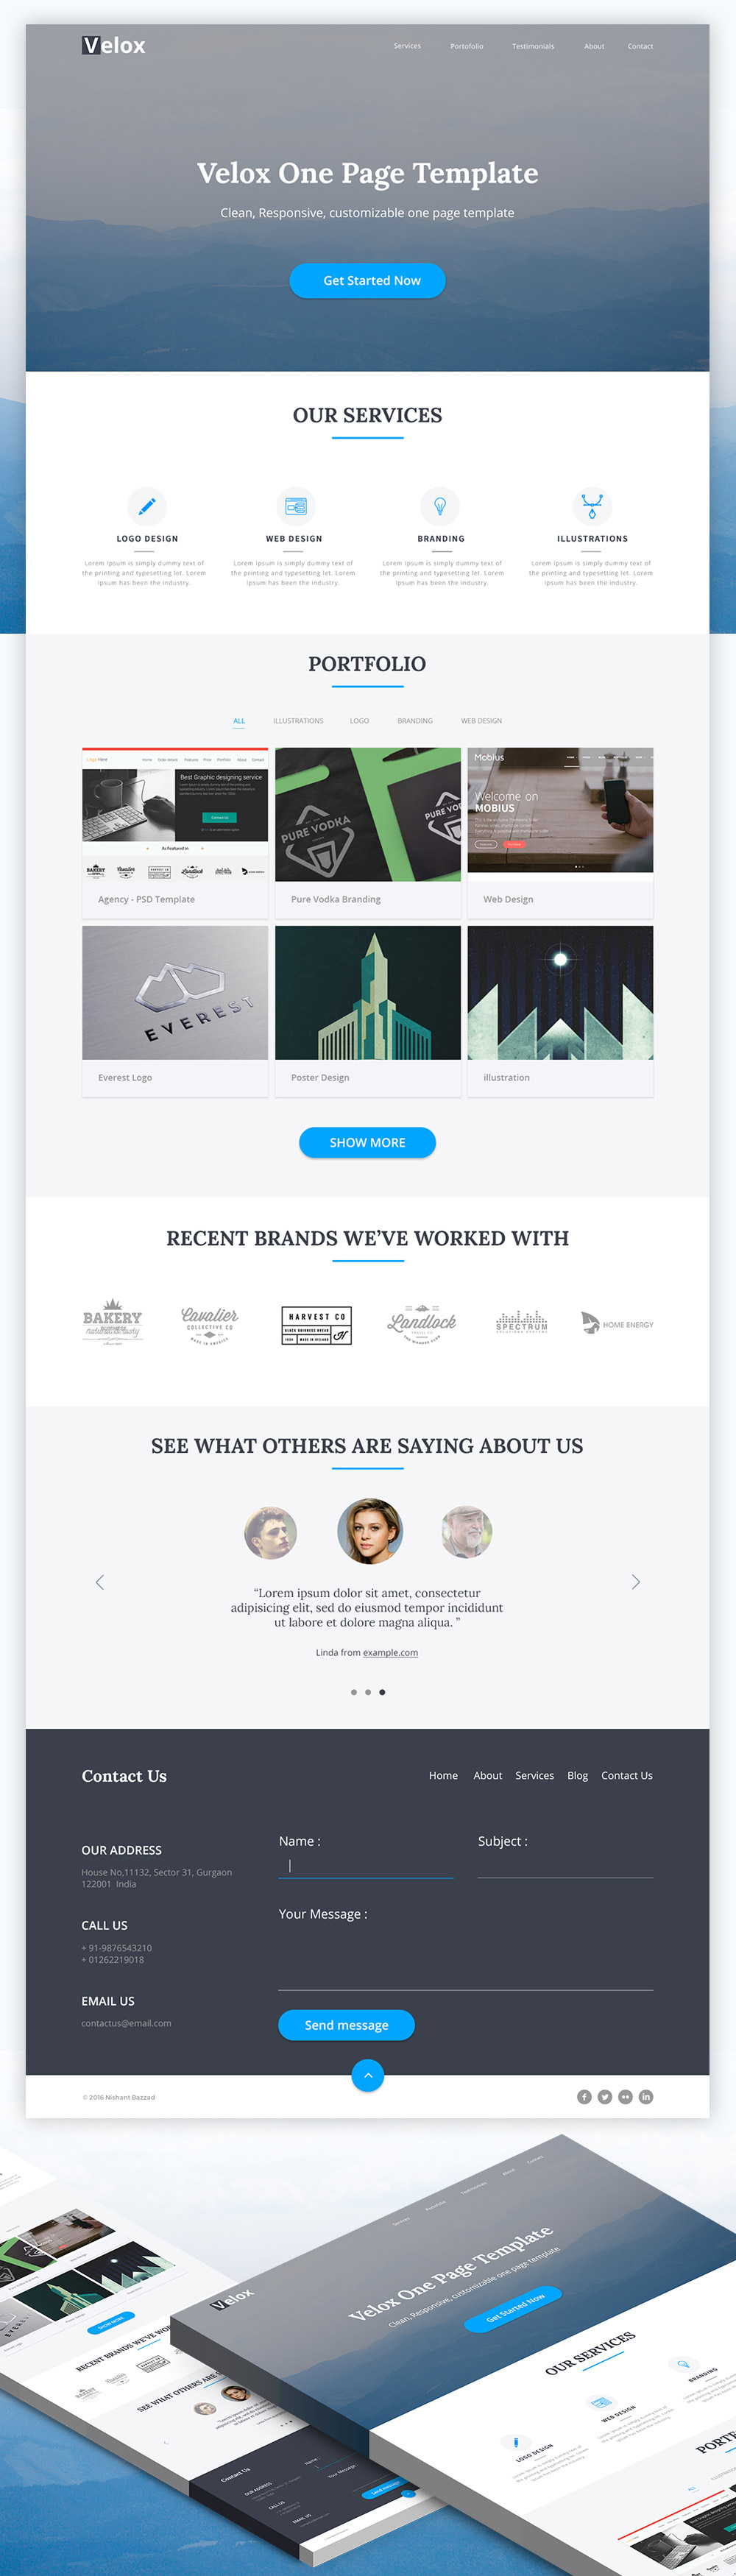 Responsive One Page Website Template For Creative Agencies